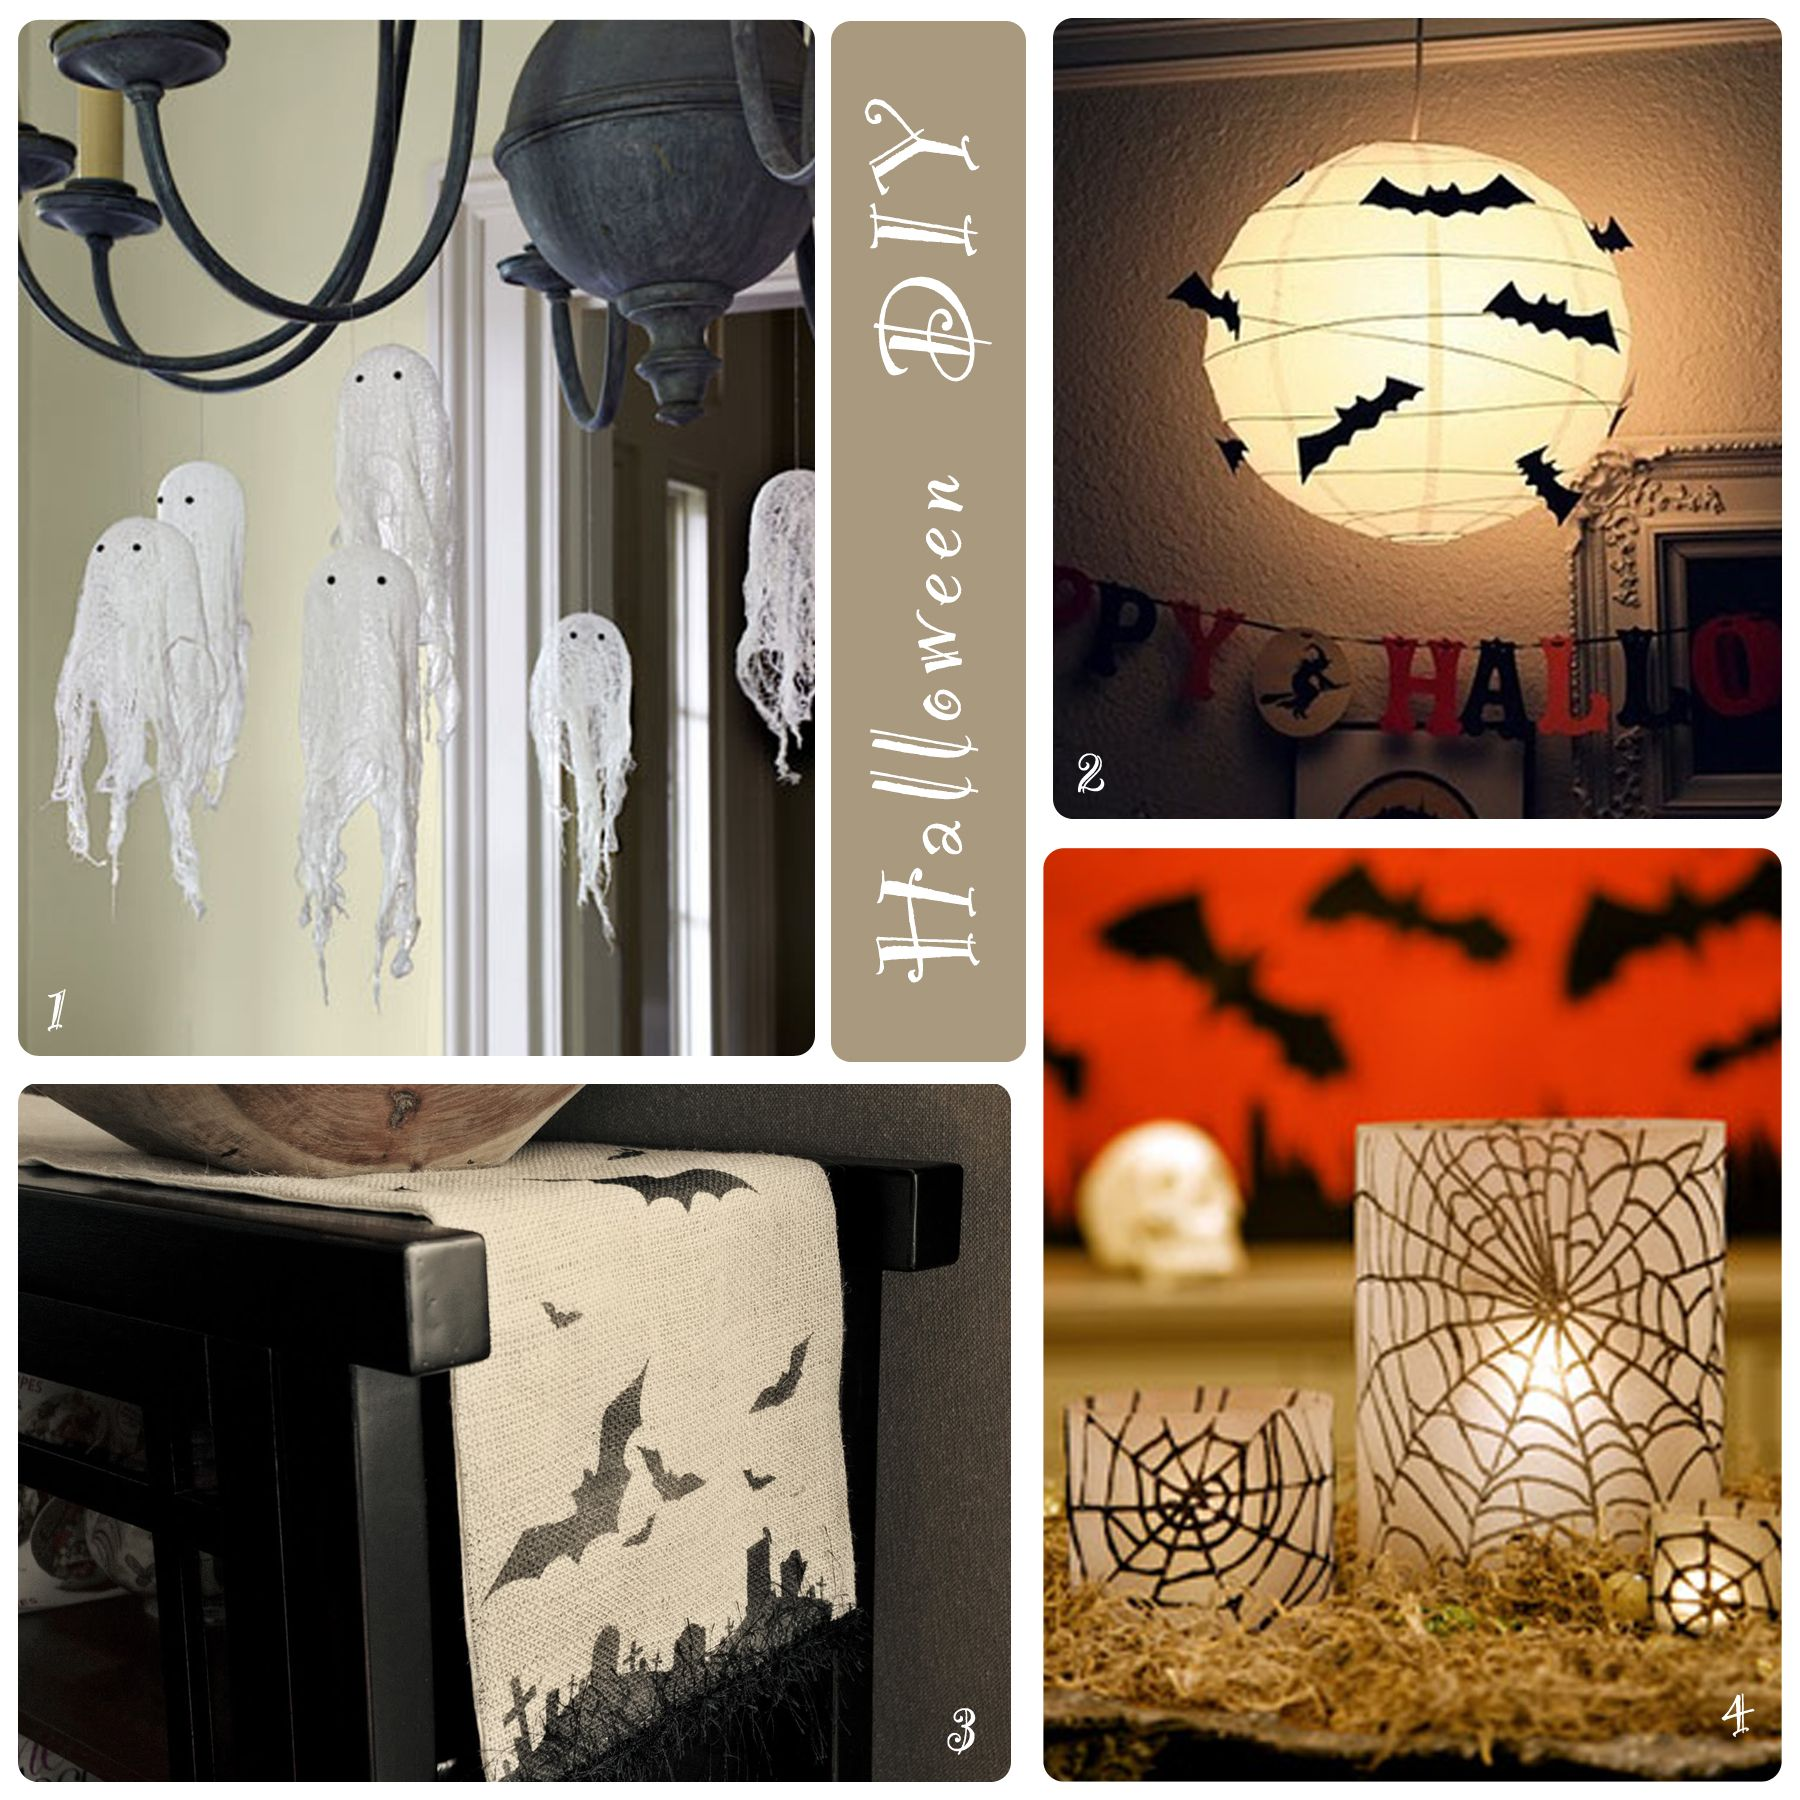 Happy Halloween Tips On Home Decoration 1: Cheesecloth Ghosts 2. Bat Covered Lantern 3. Creepy Burlap Runner 4